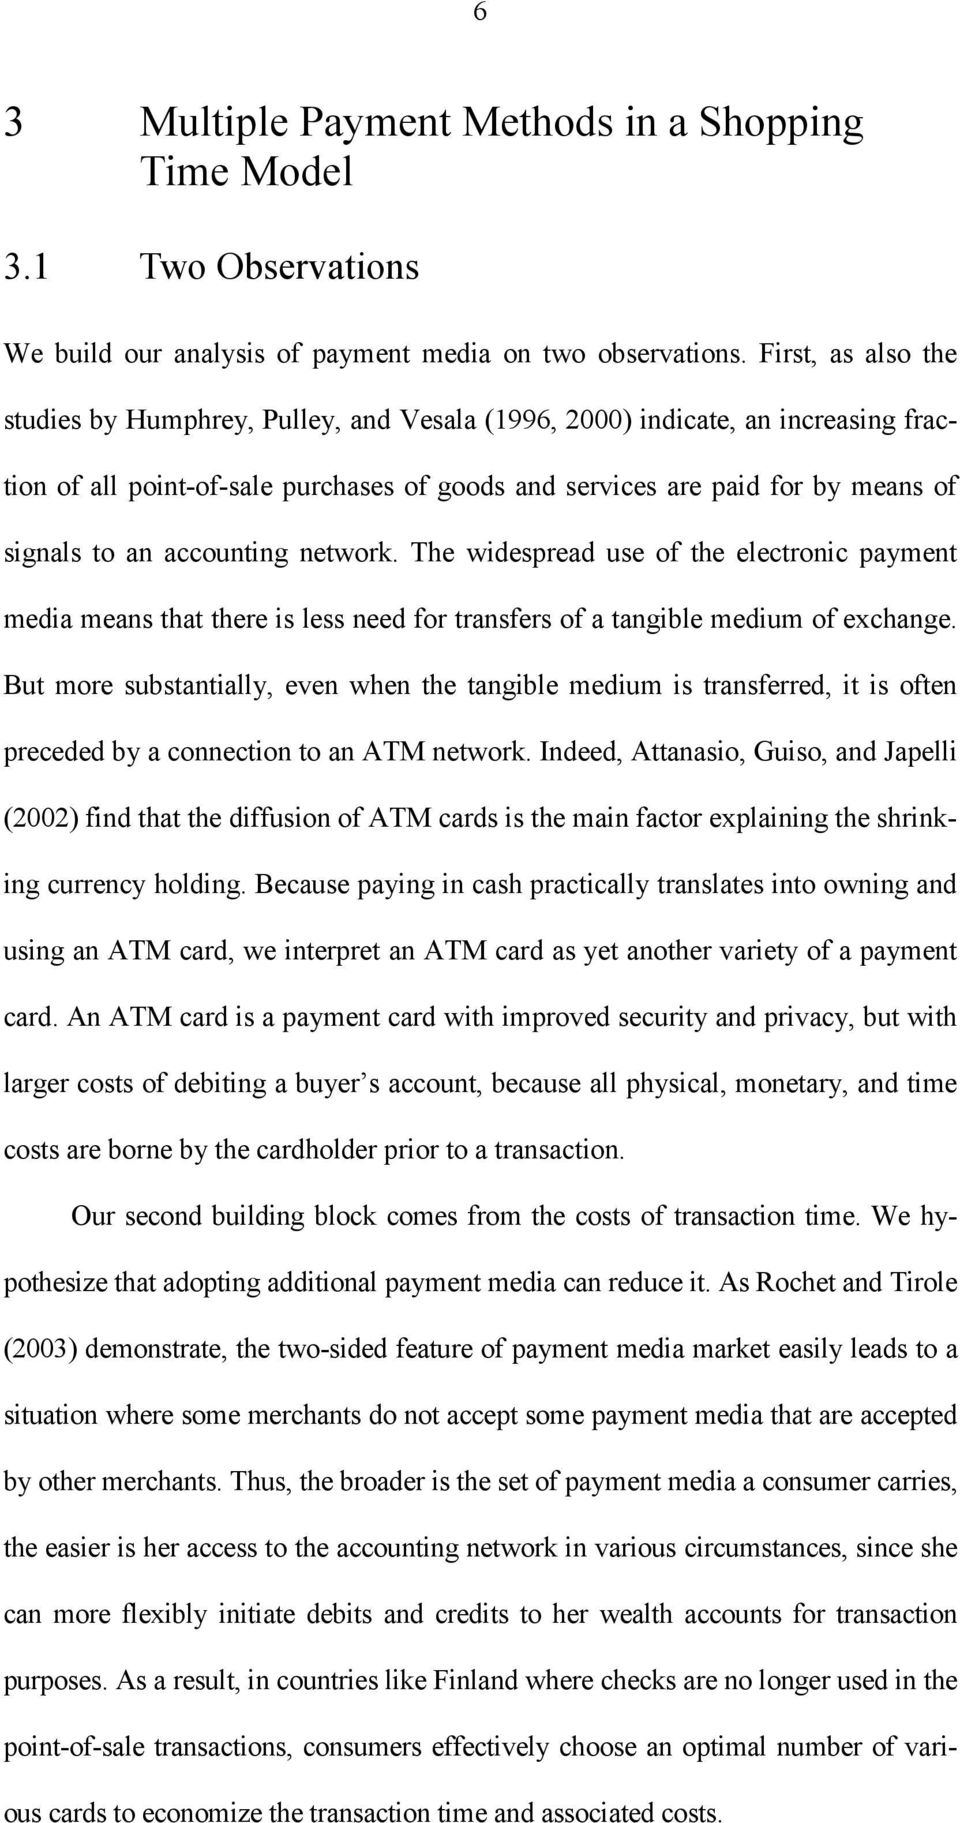 network. The wdespread use of the electronc payment meda means that there s less need for transfers of a tangble medum of exchange.